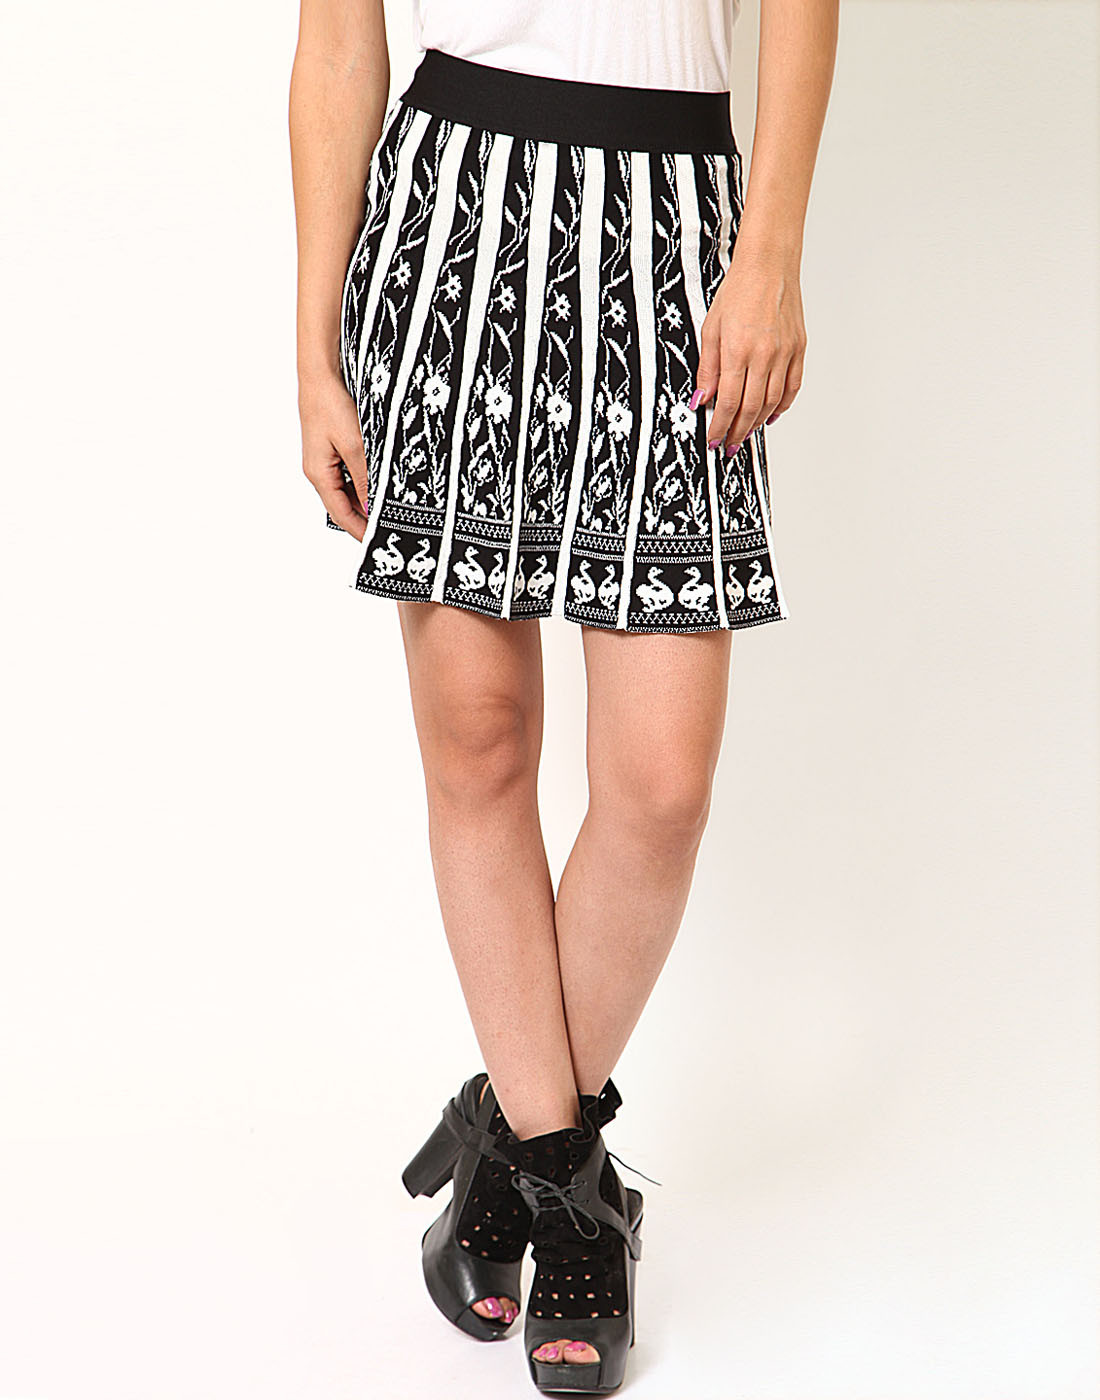 Sportelle USA India Floral Print Womens A-line Black, White Skirt